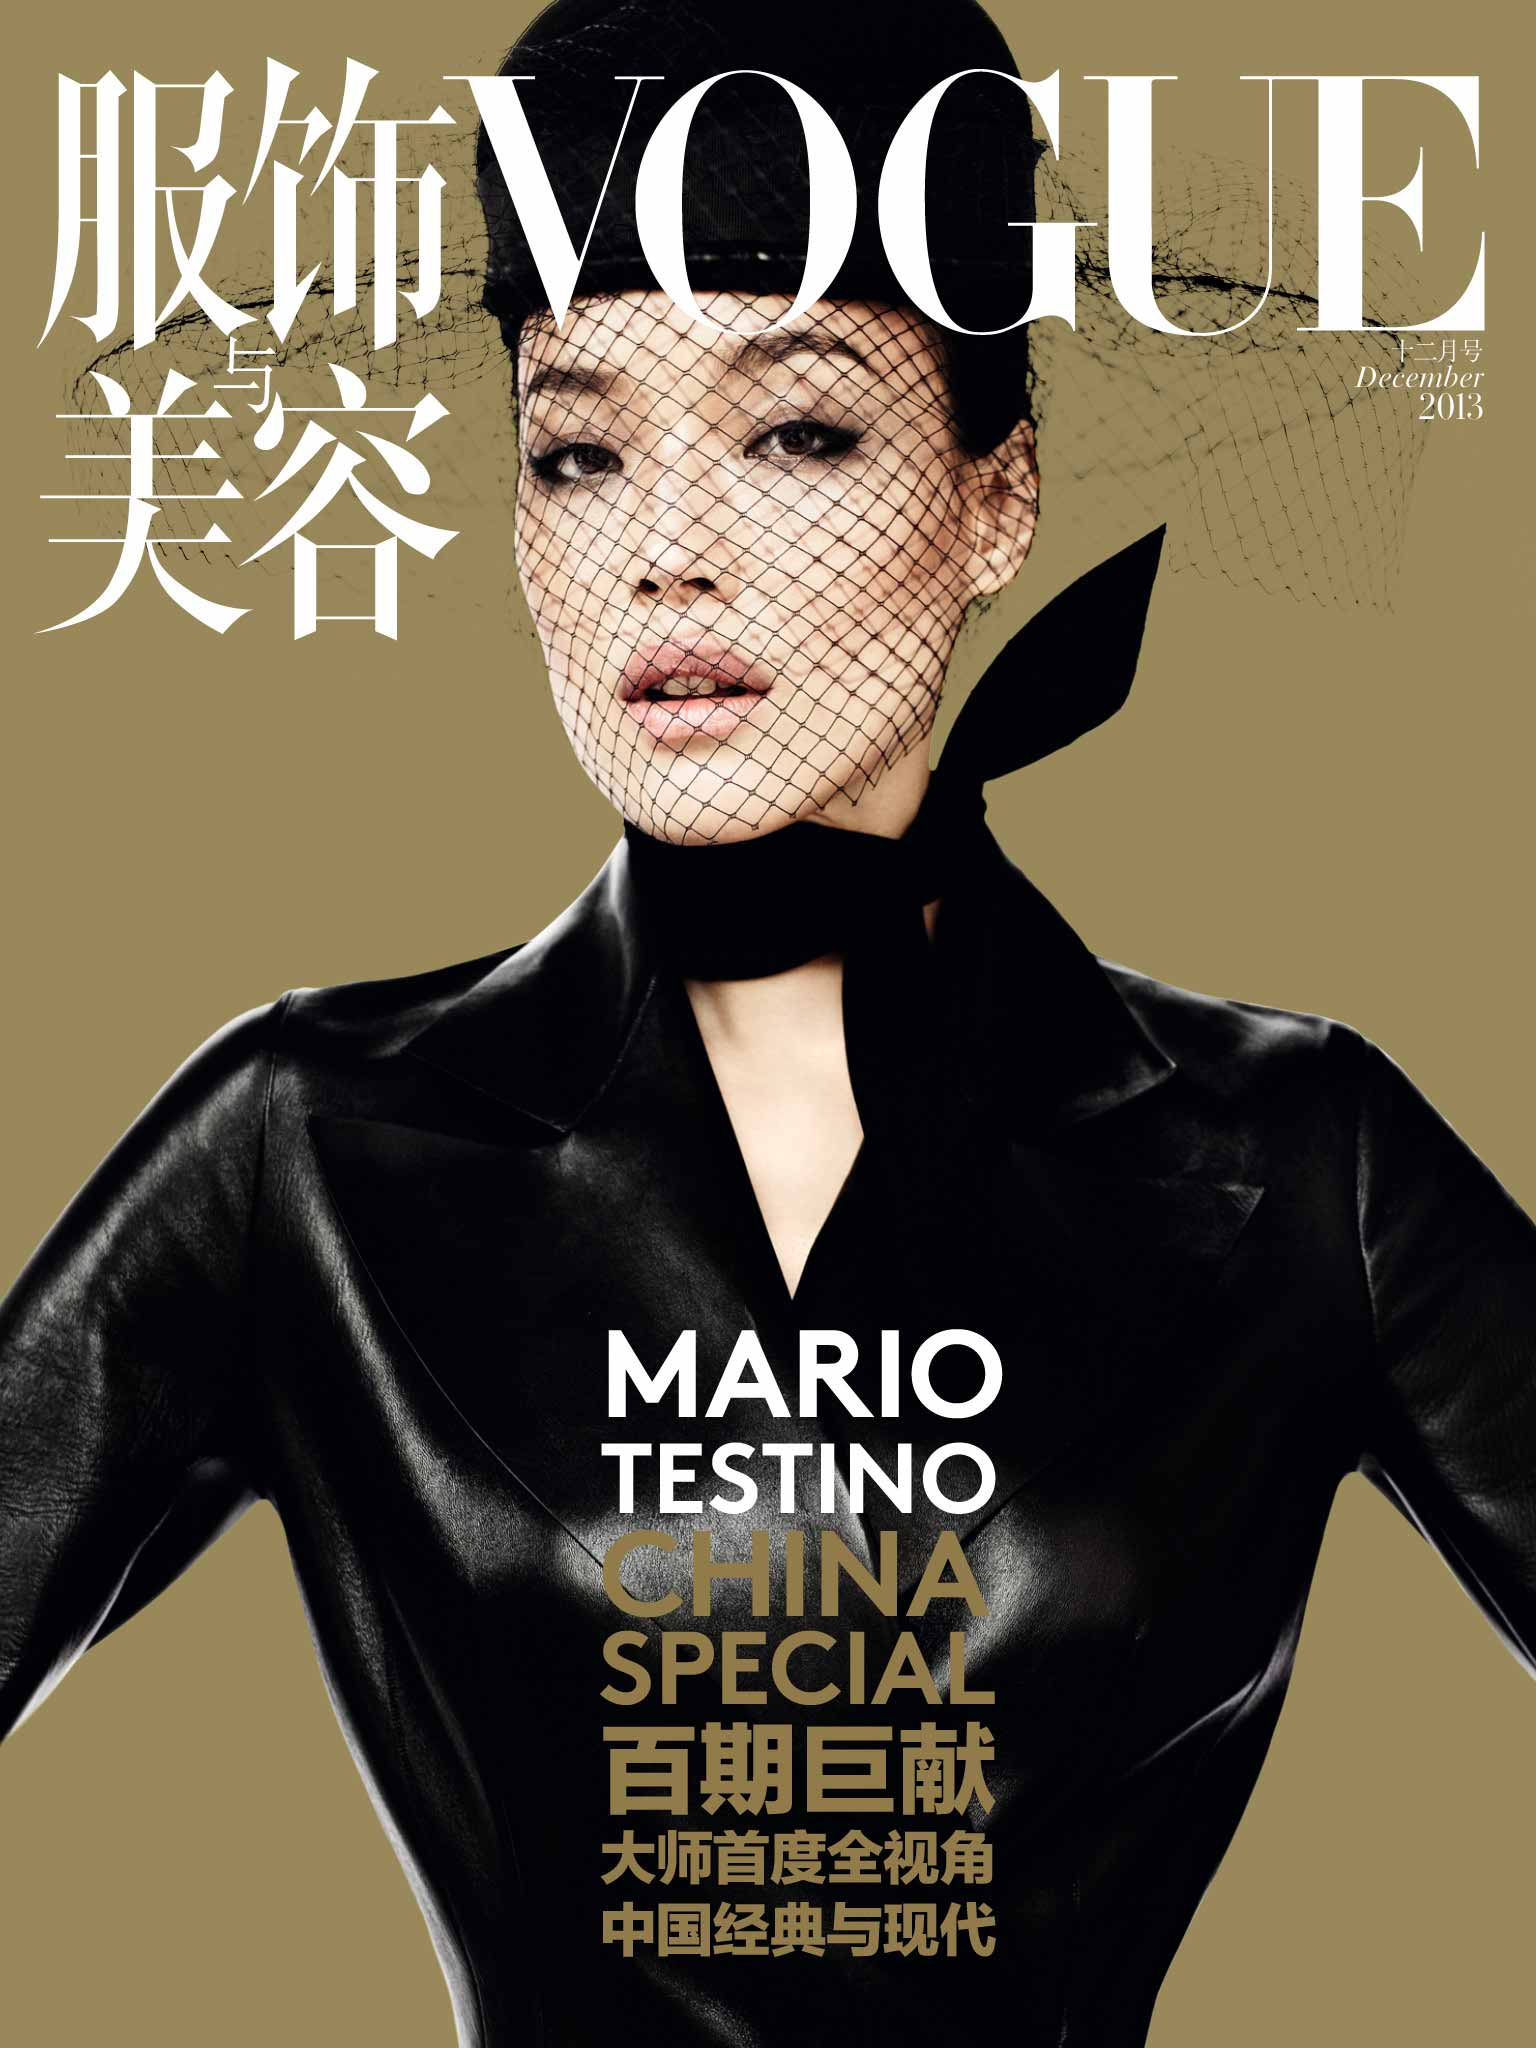 Shu Qi by Mario Testino A Class Act - Vogue China December 2013 2